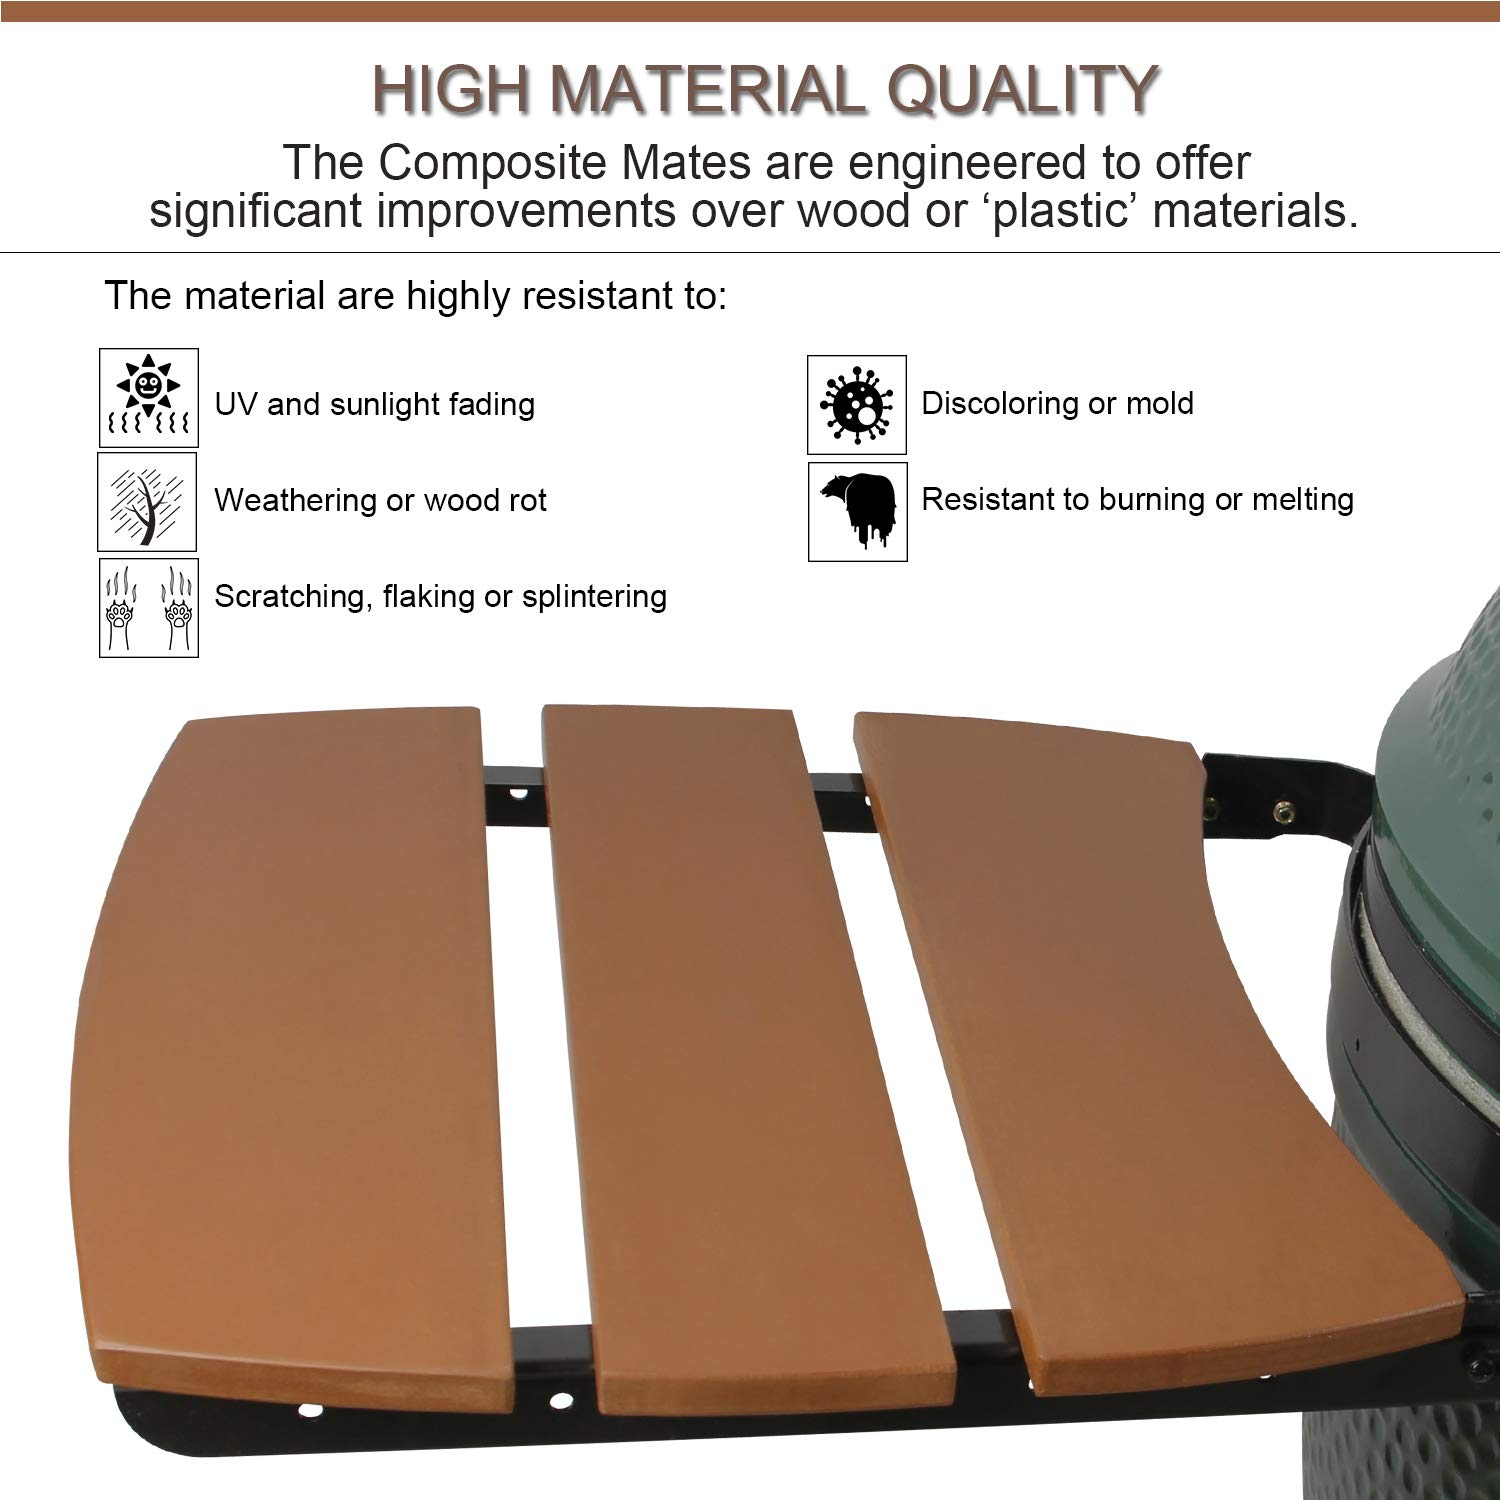 KAMaster 3 Slat Big Green Egg Side Shelves for Large BGE Egg Mates Outdoor Storage Table Composite Kamado Grill Accessories HDPE Big Green Egg Accessories by KAMaster (Image #4)